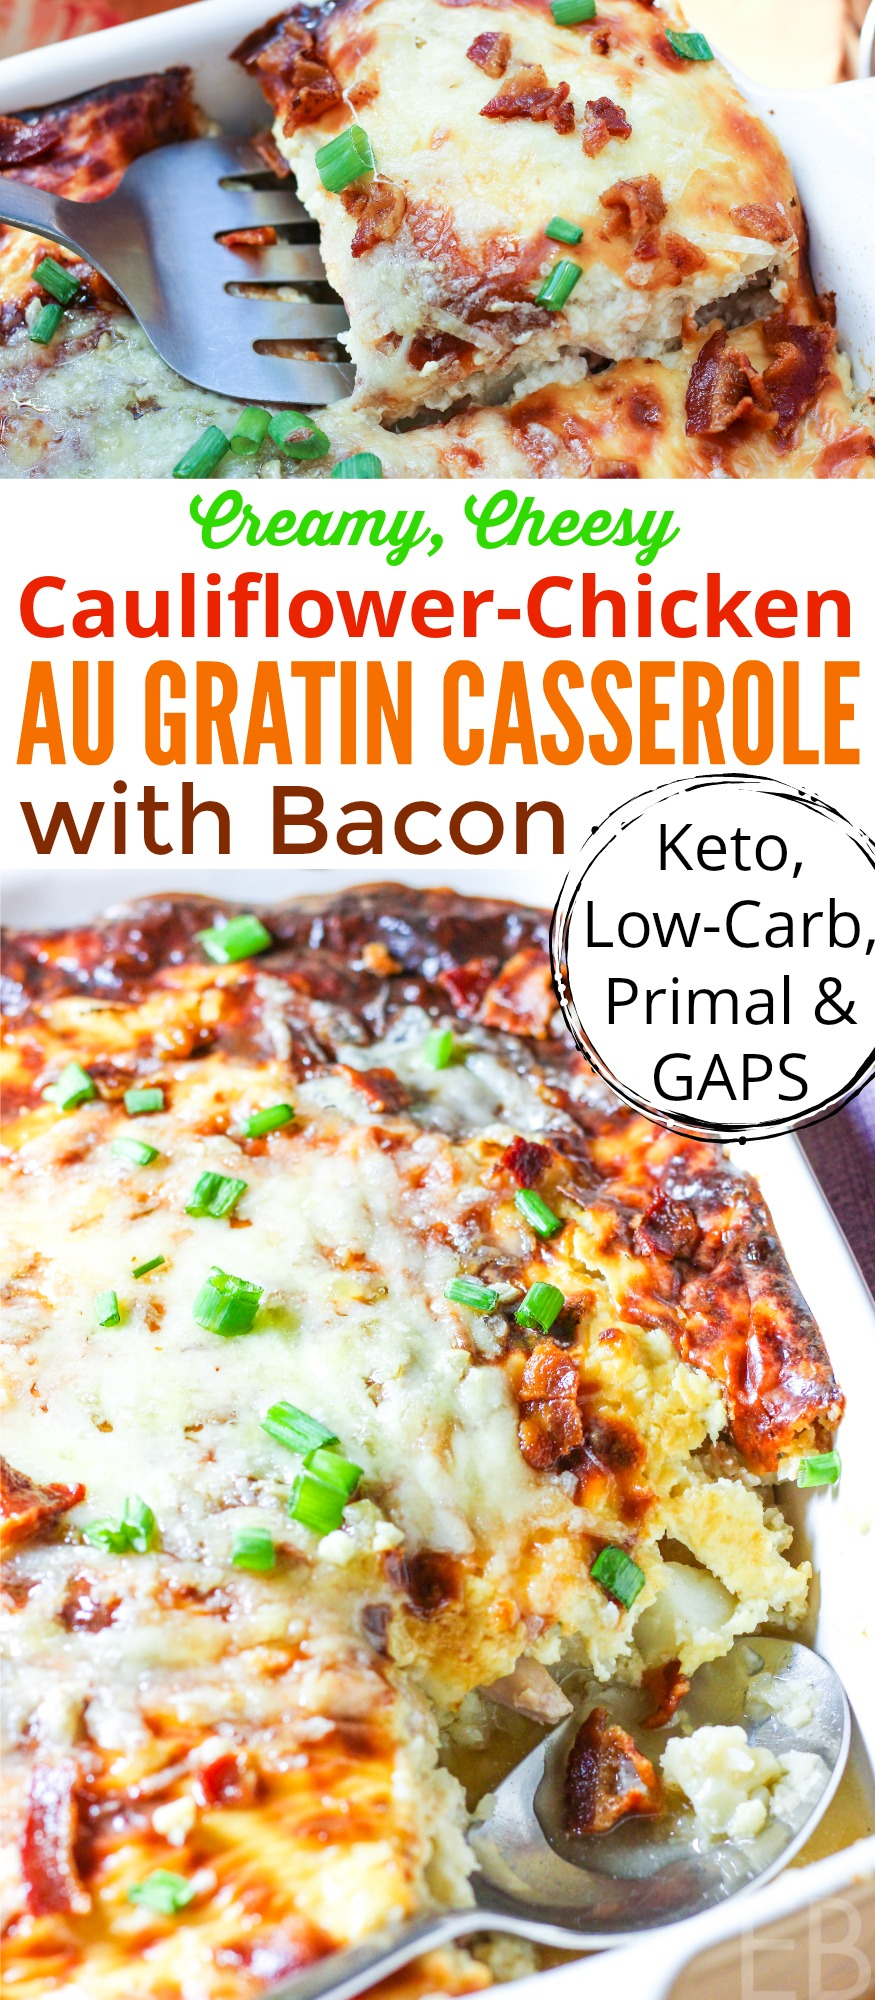 Delicious!! ~ Cauliflower-Chicken Au Gratin Casserole with Bacon is Keto, Low-Carb, Primal (Paleo + dairy), and GAPS diet-friendly. It's comfort food, and it can be made ahead of time. #keto #lowcarb #gapsdiet #paleo #primal #chicken #cauliflower #bacon #cheese #casserole #makeahead #augratin #onedish #dinner #comfortfood #onepan